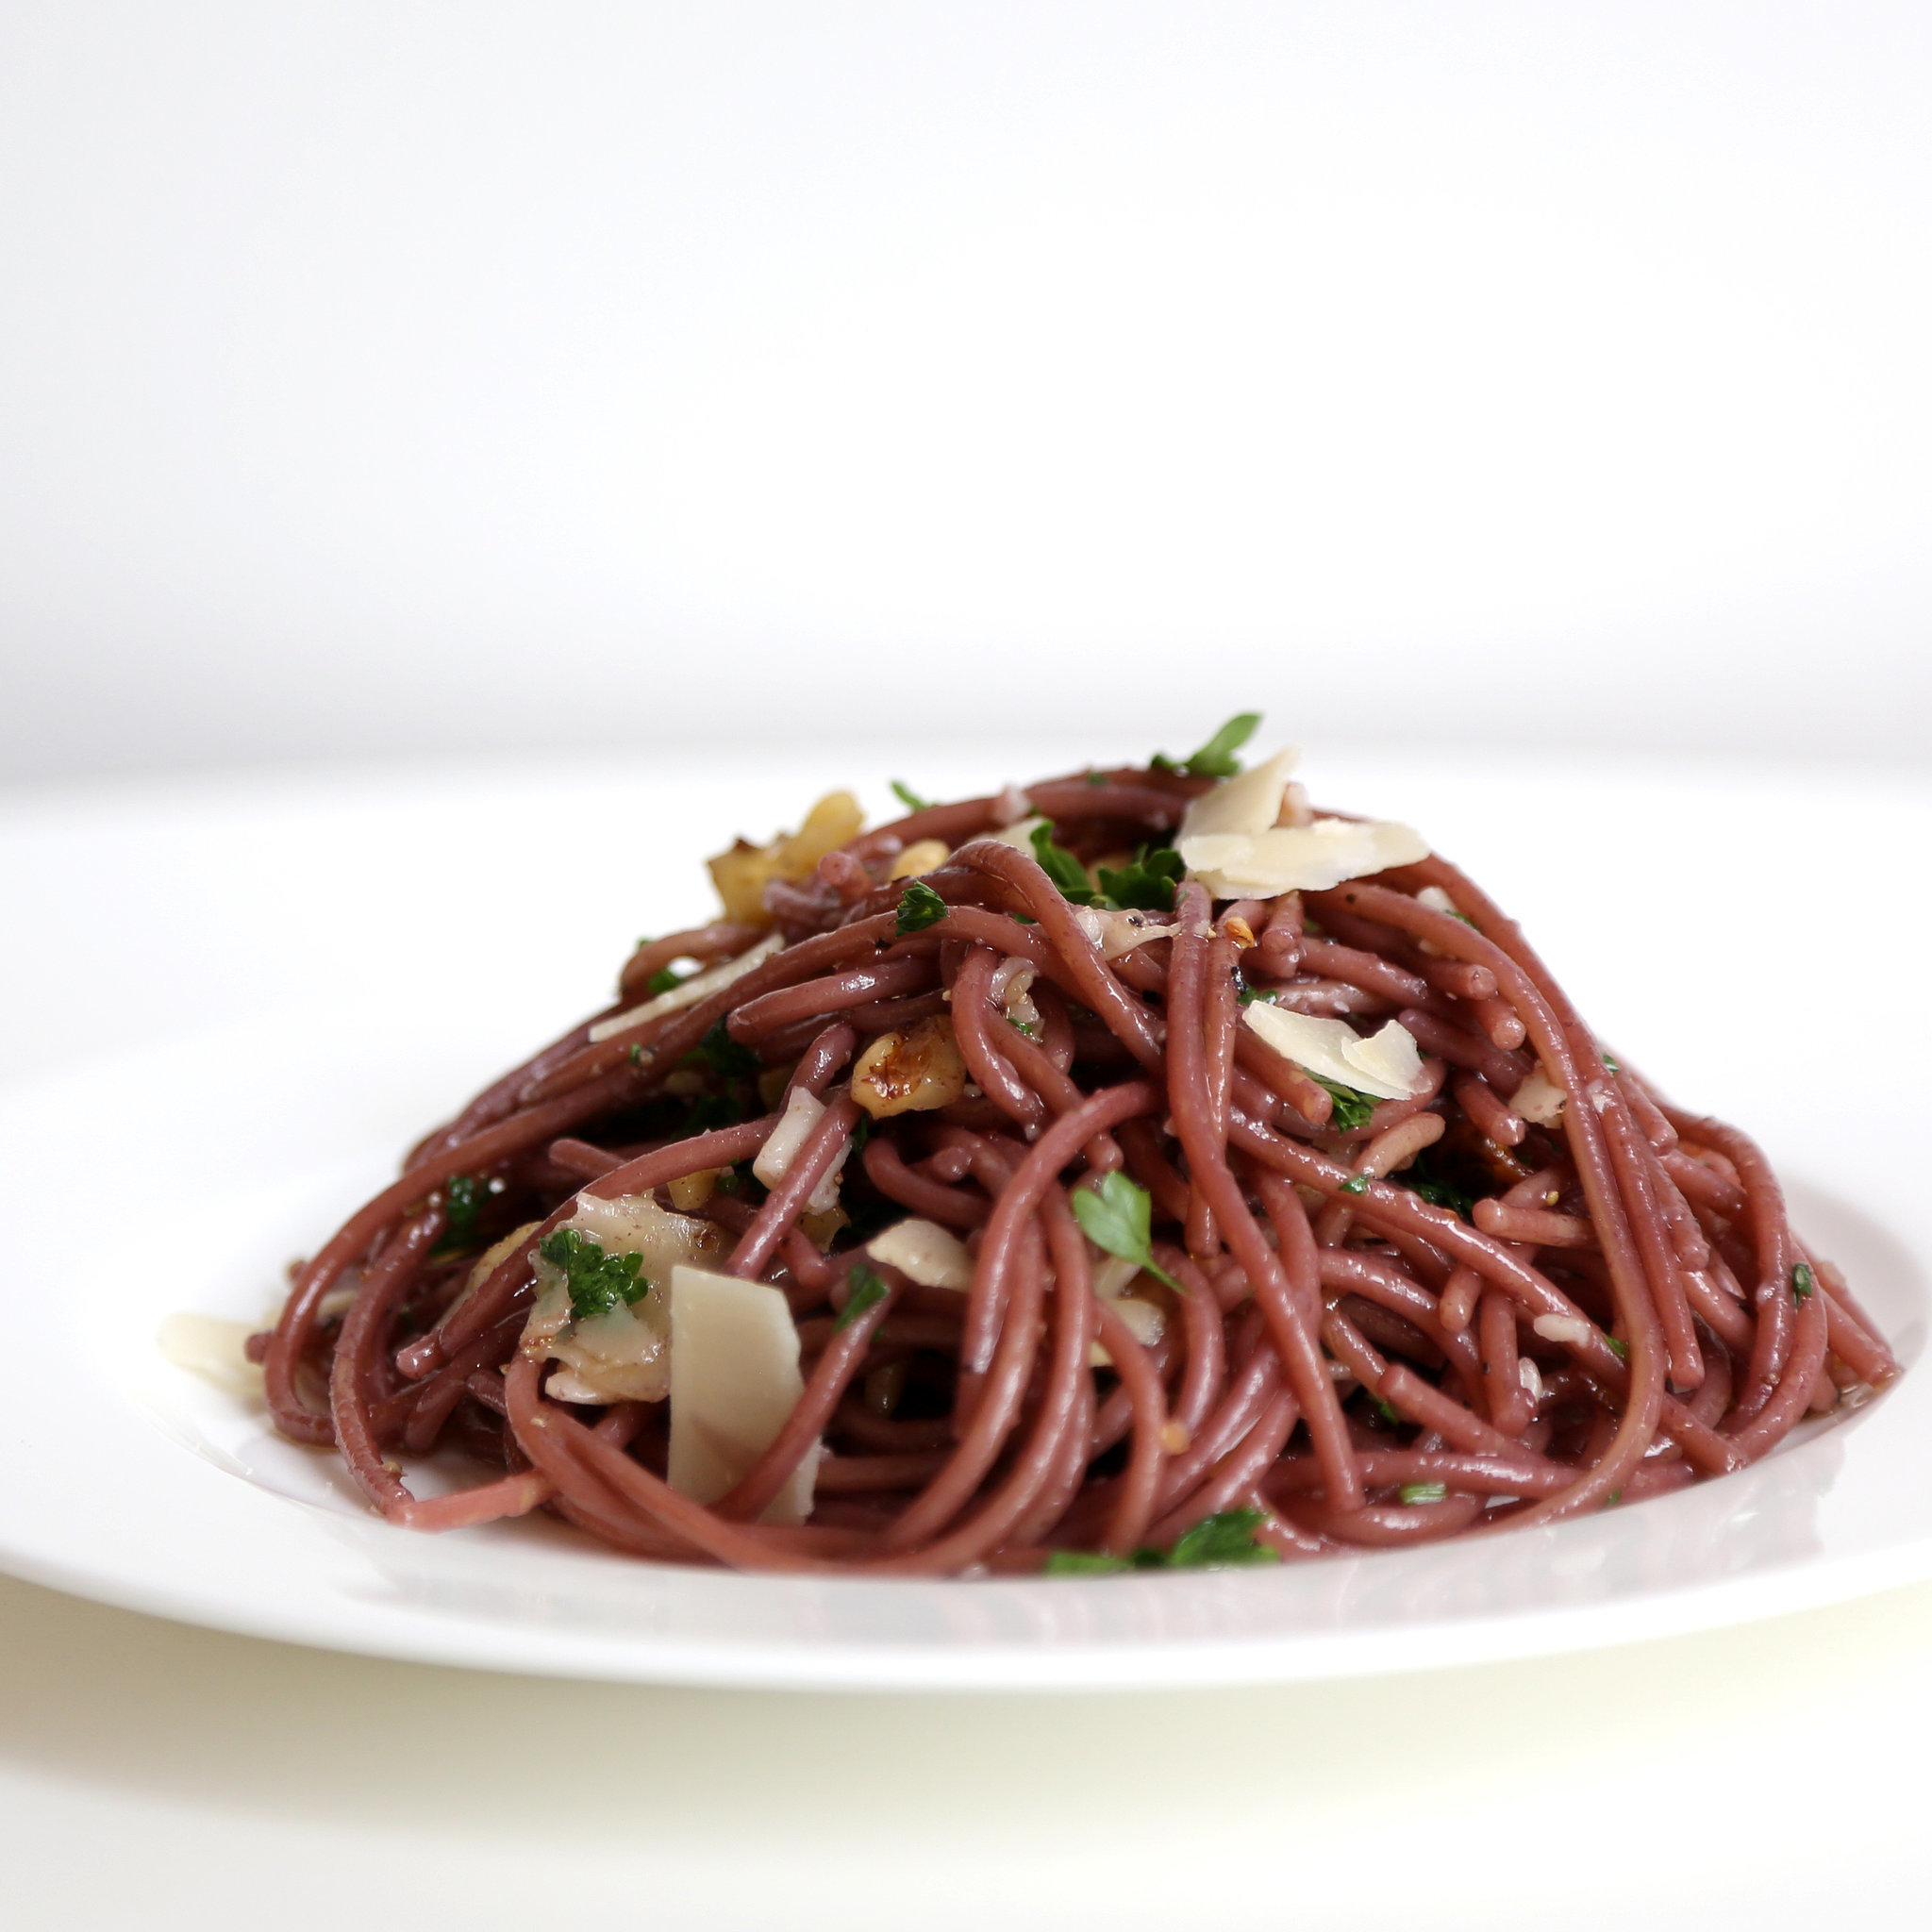 Spaghetti cooked in red wine popsugar food forumfinder Choice Image